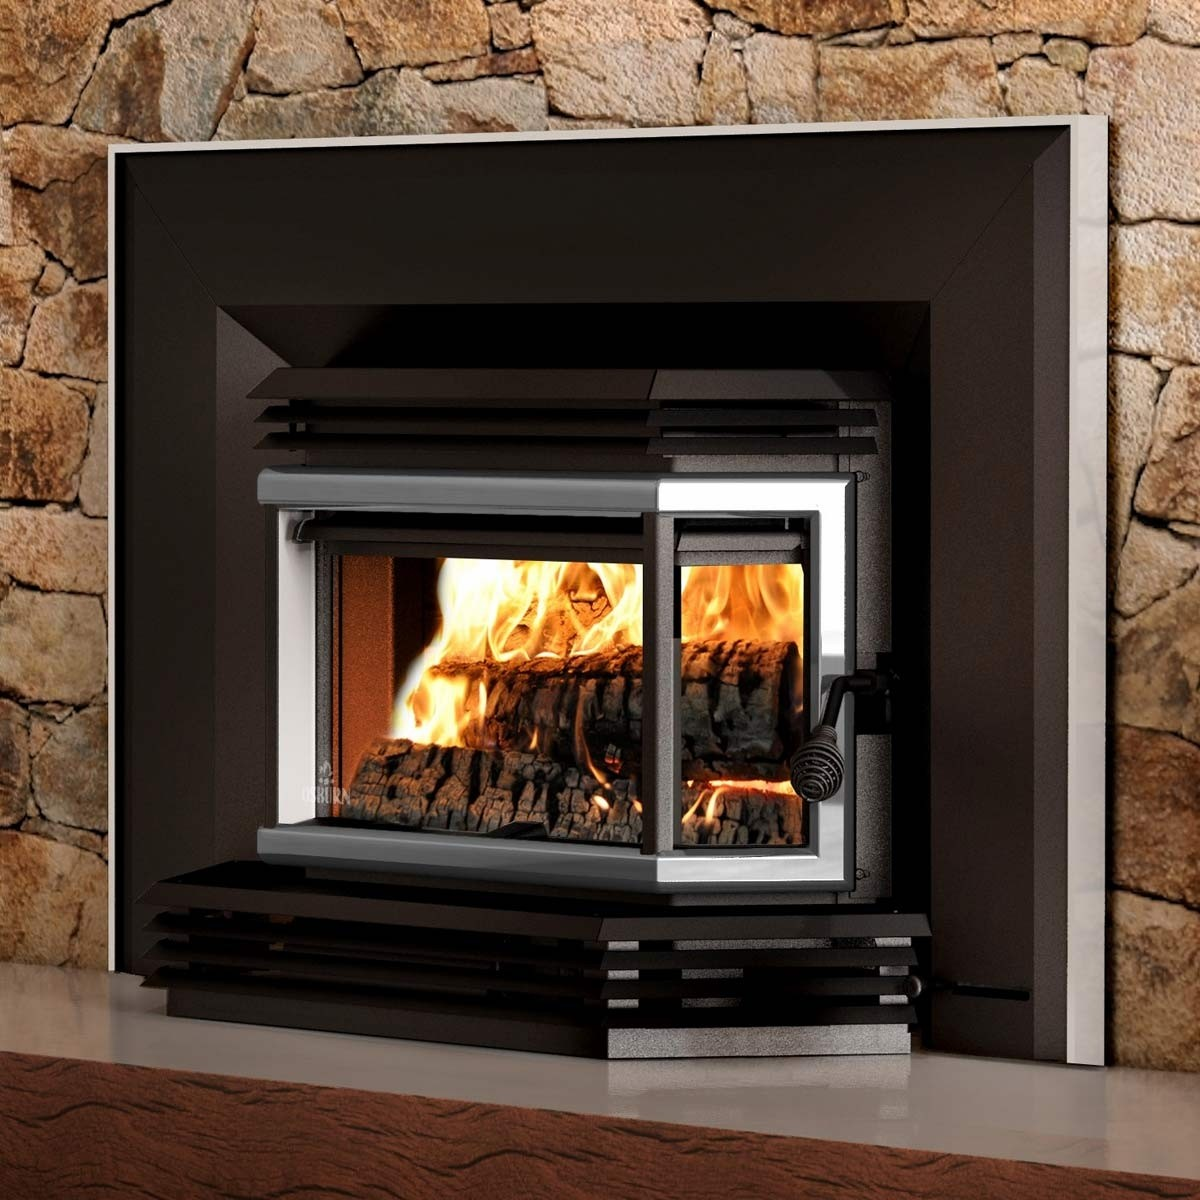 10 Best Wood Burning Fireplace Inserts Consumer Reports